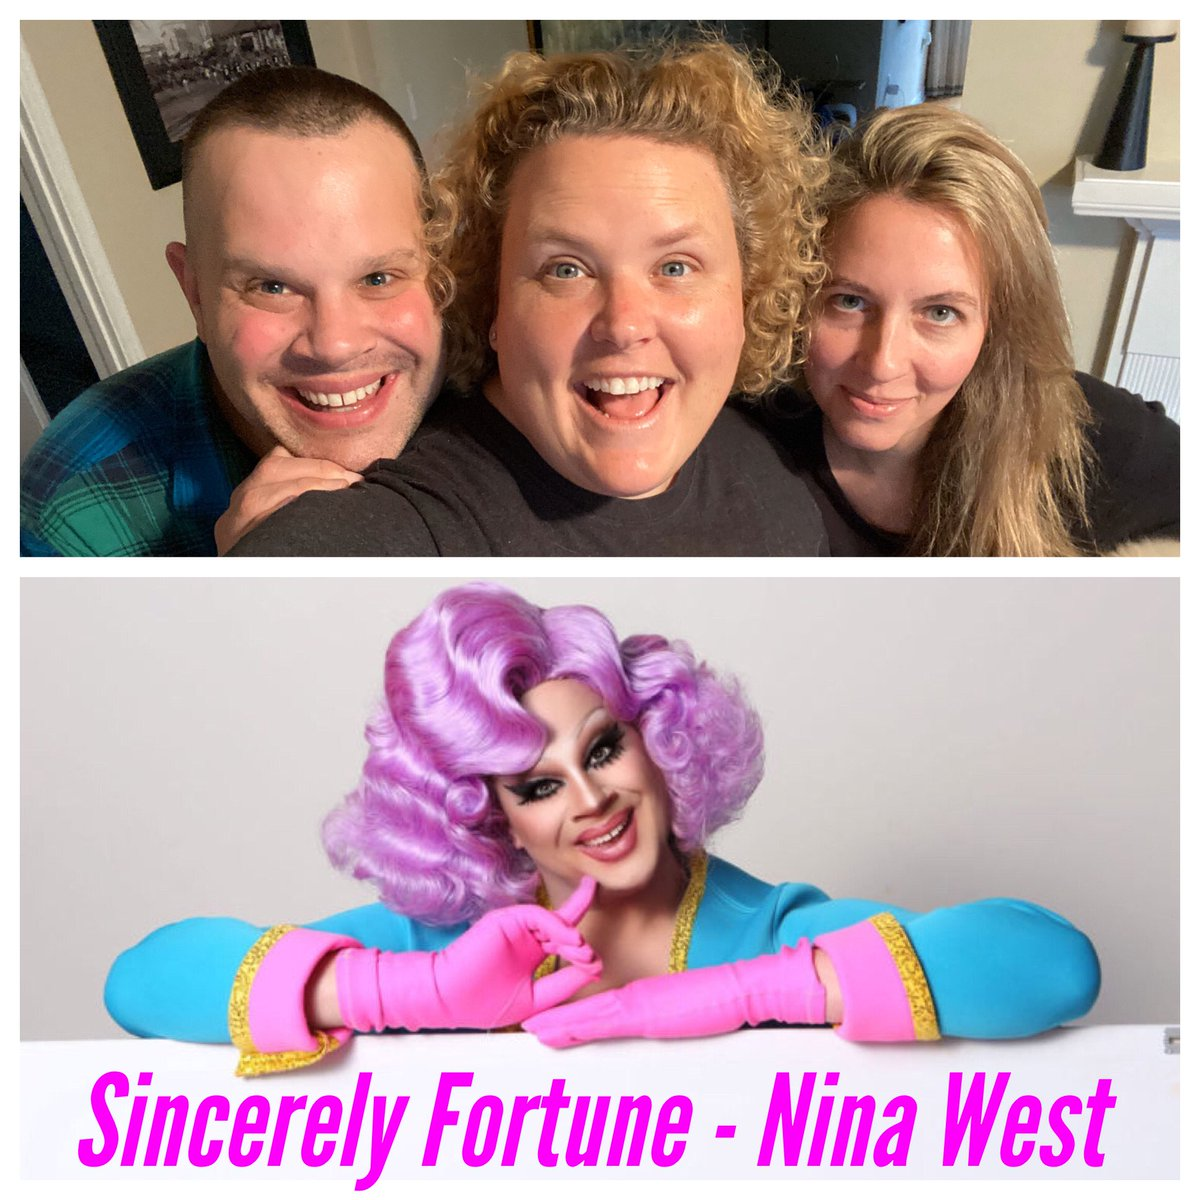 New podcast episode today of Sincerely Fortune! We have RuPaul's Drag Race superstar, @NinaWest, who sits down with Jax and I for over an hour. We get deep, we get silly, we talk Drag Race. Check it out!